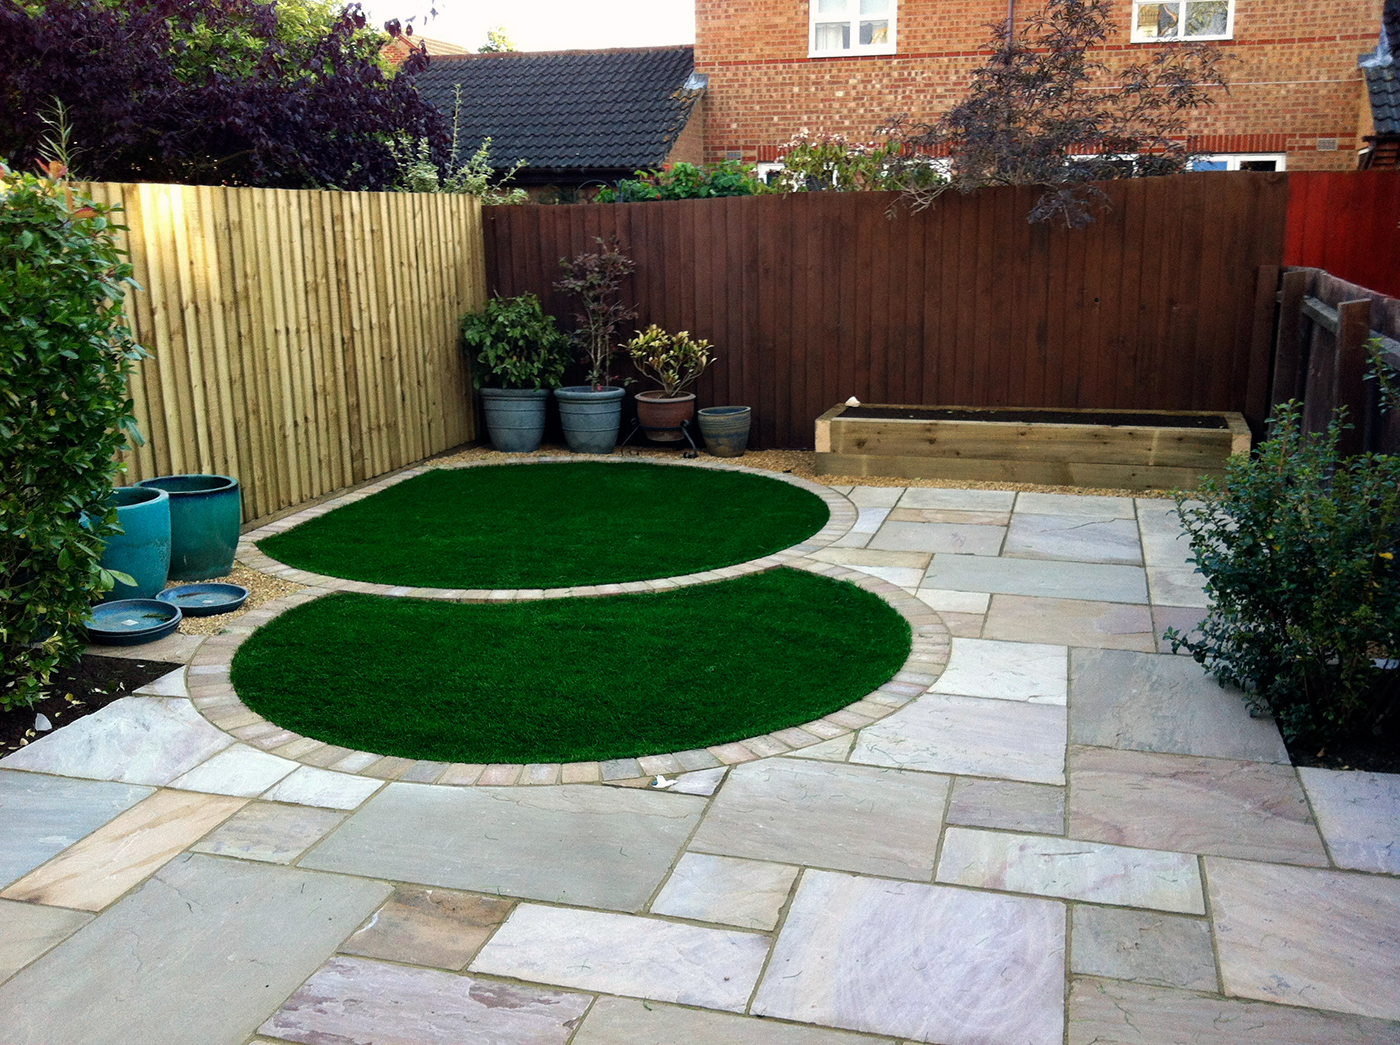 Marvelous Artificial Grass, Perfect For Covering Tired Patios Or Paving.